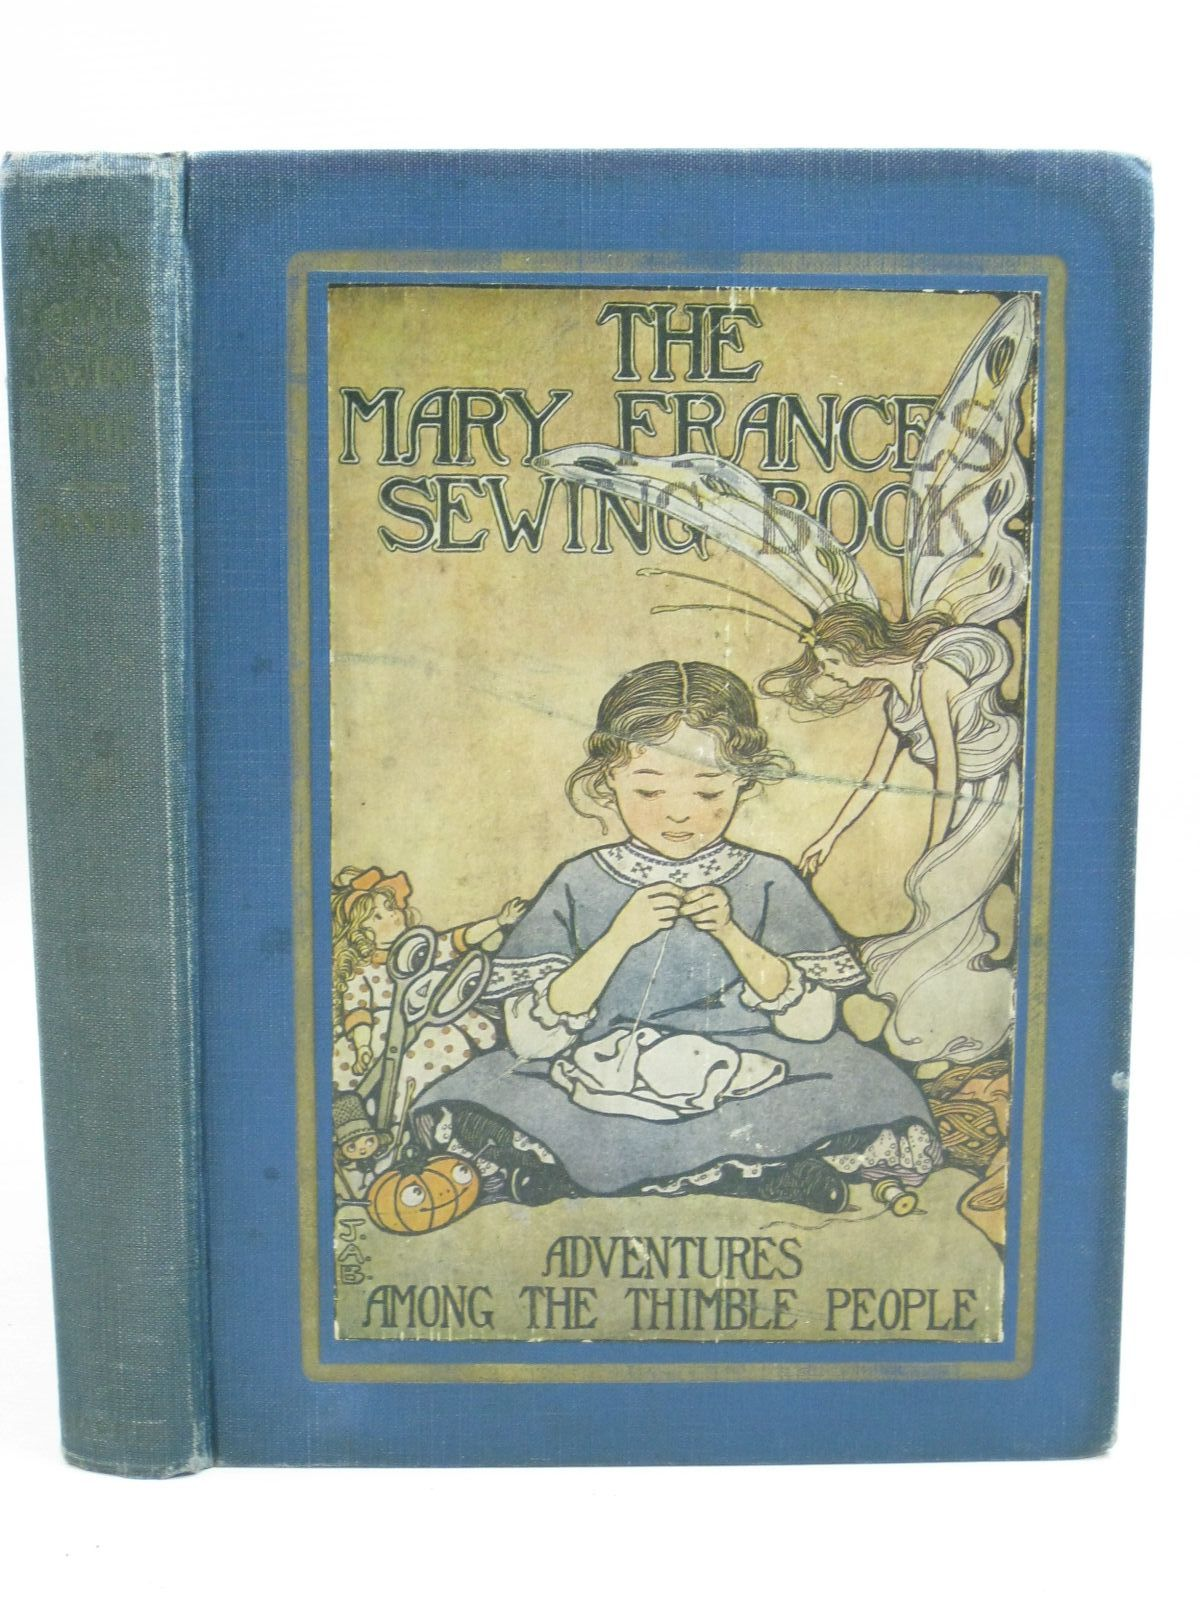 Photo of THE MARY FRANCES SEWING BOOK written by Fryer, Jane Eayre illustrated by Boyer, Jane Allen published by George G. Harrap & Company Ltd. (STOCK CODE: 1404994)  for sale by Stella & Rose's Books